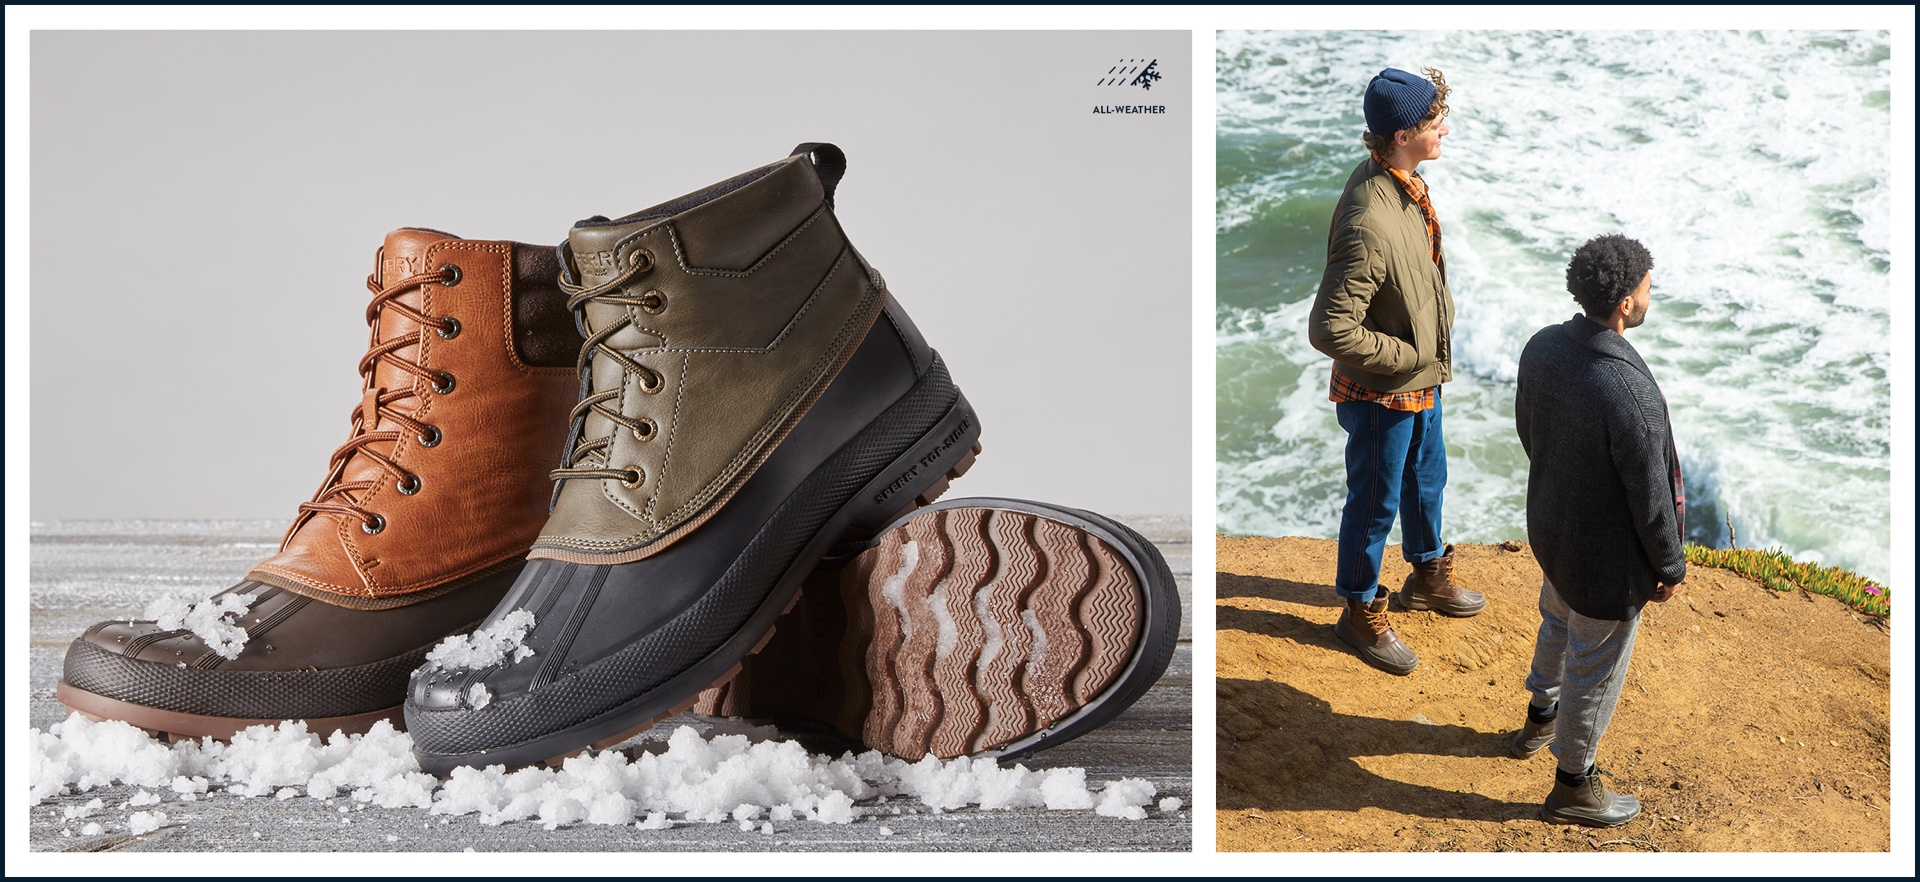 Boots by Sperry: All-Weather